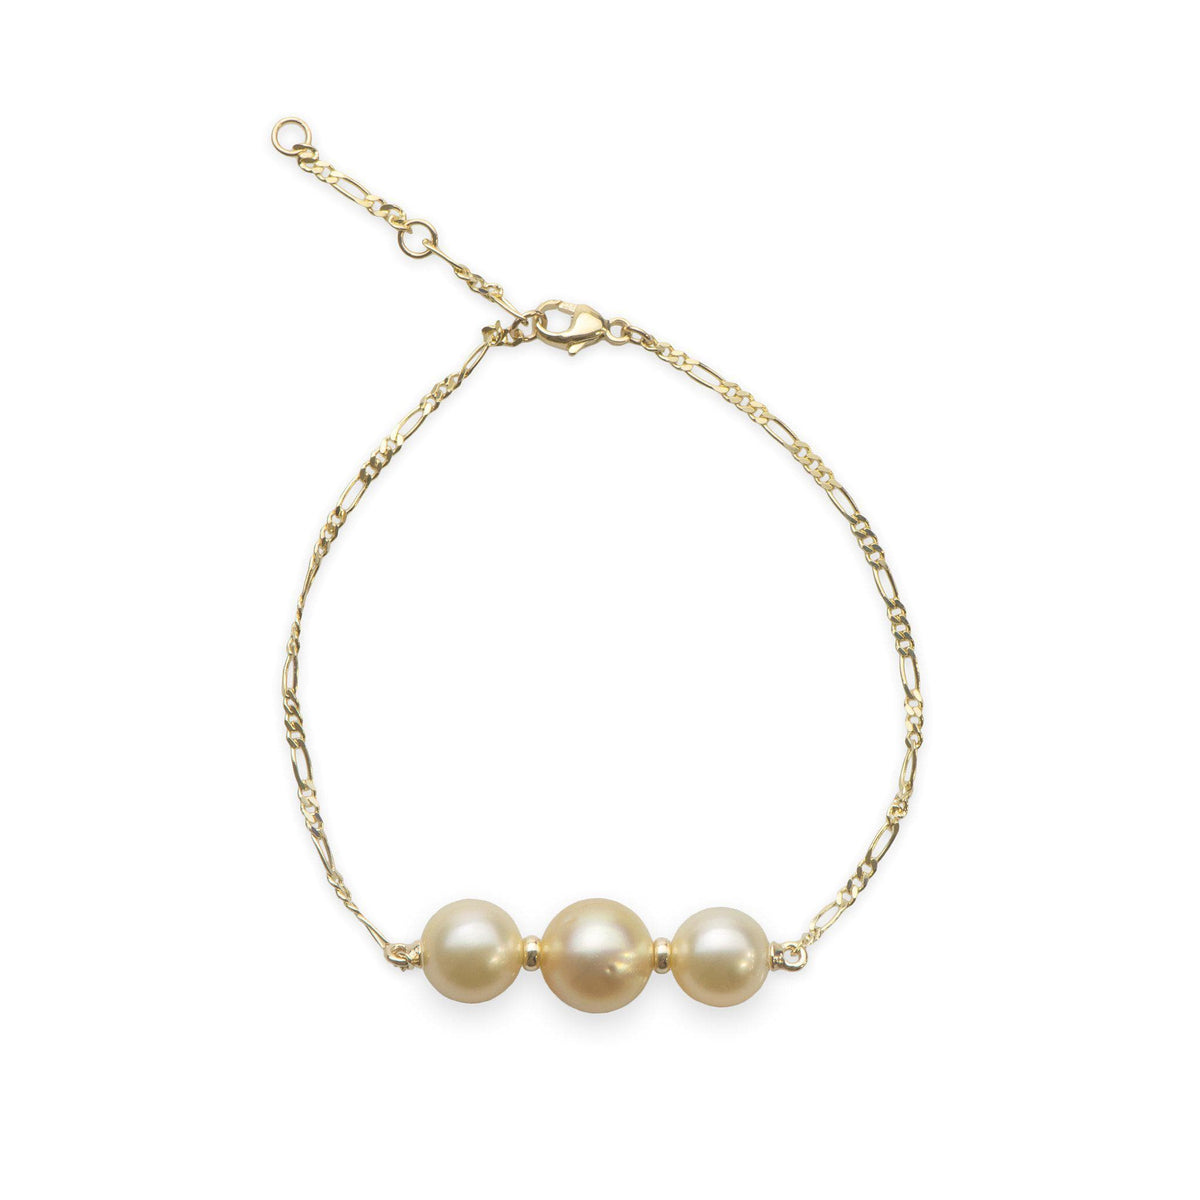 "7.5-9"" Adjustable South Sea Pearl Bracelet in 14K Yellow Gold (8-11mm)-[SKU]"